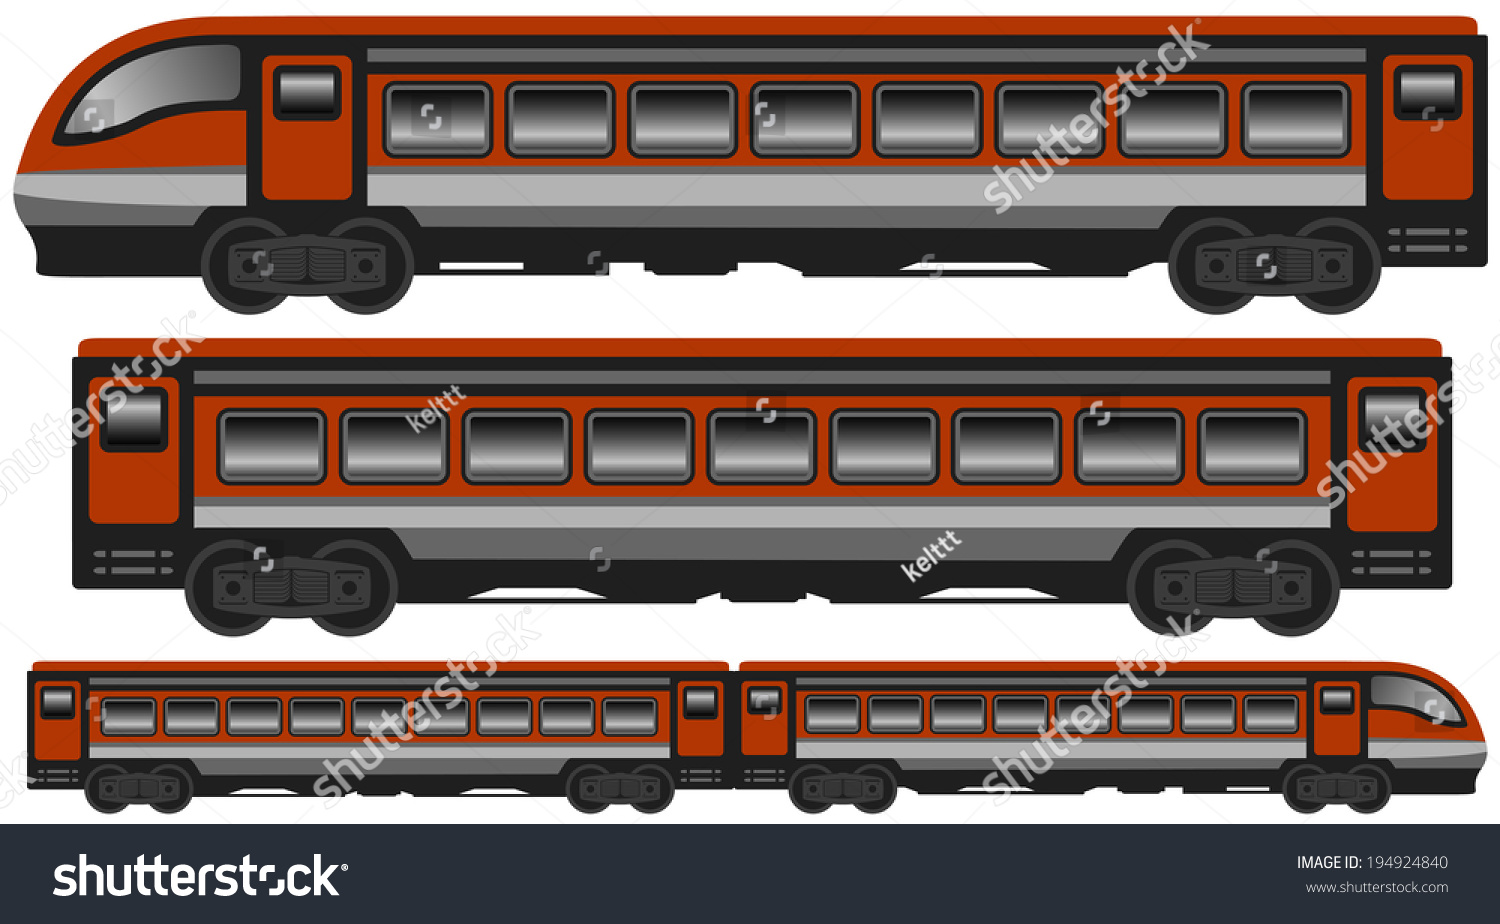 Set isolated modern train car carriage stock vector for Car carriage